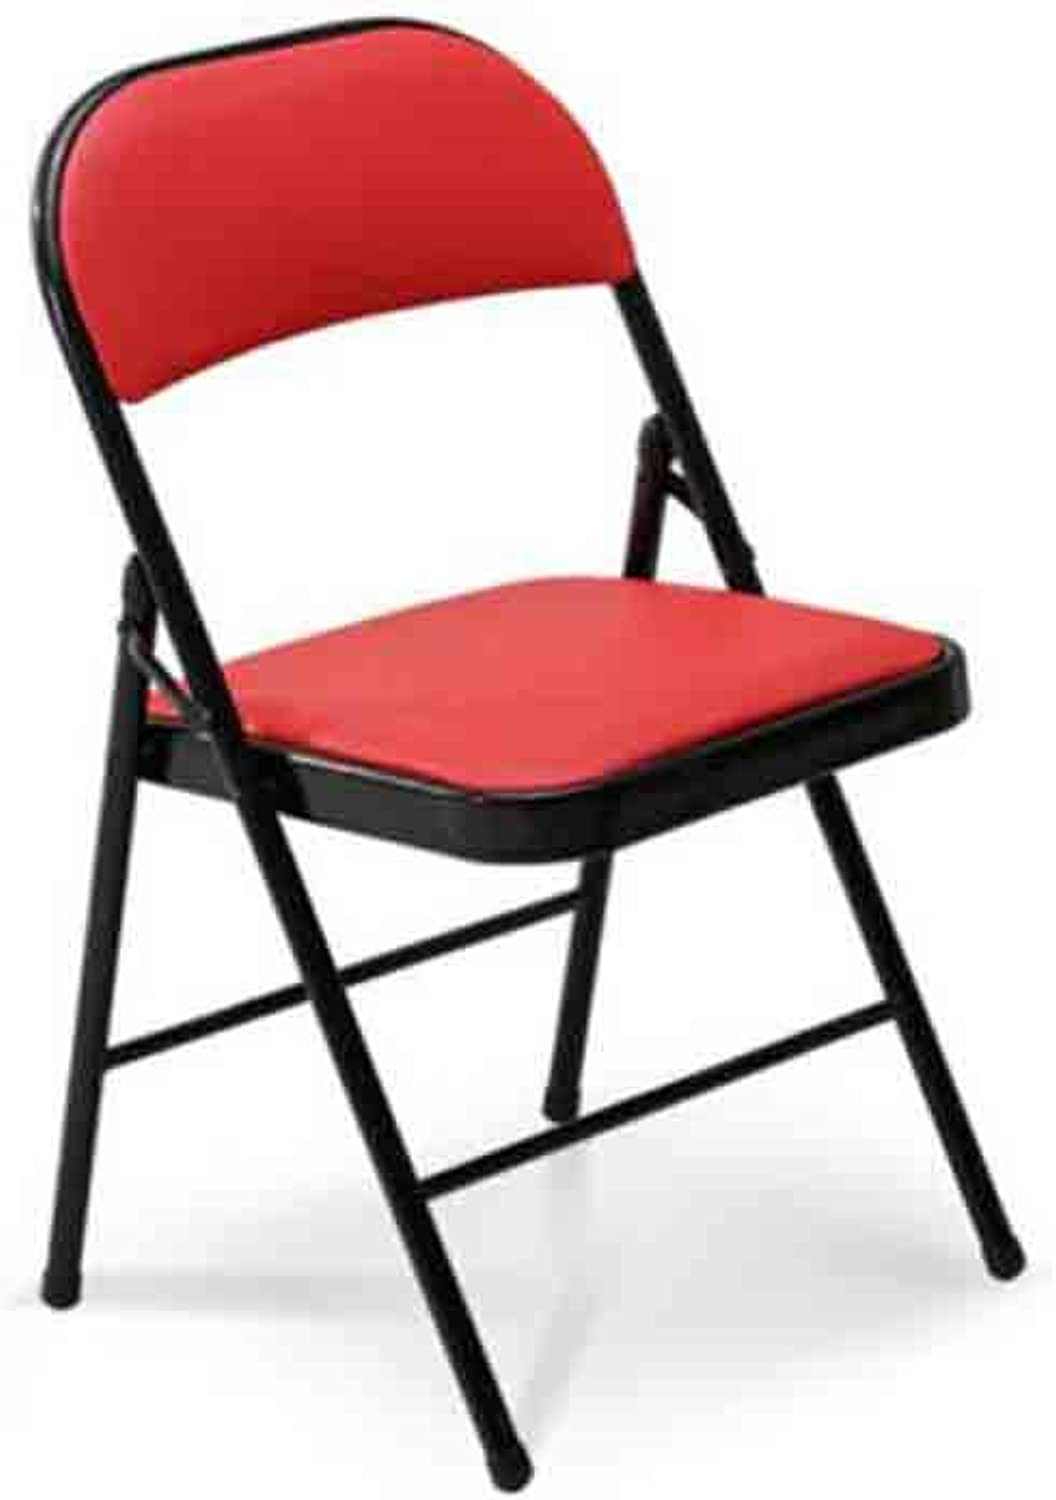 GSHWJS Backrest Computer Chair Folding Office Chair Imitation Leather Thickening Meal Seat Chair (color   6)